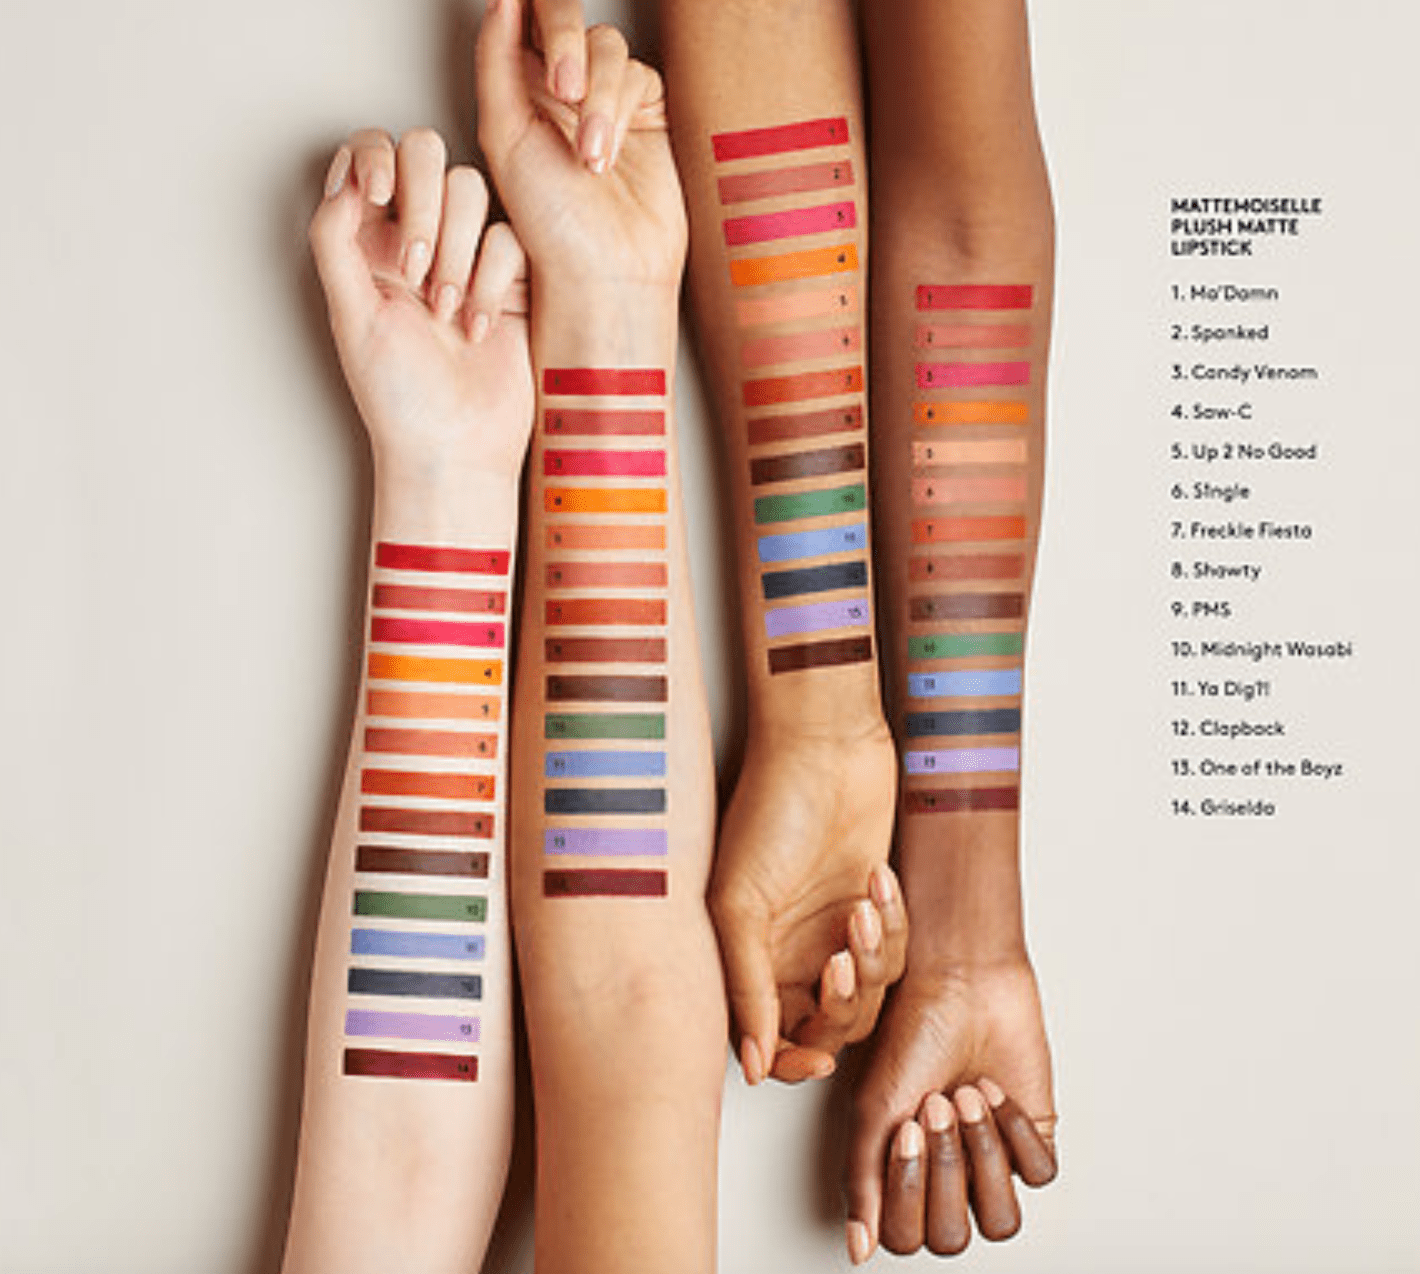 clap-back-fenty-mattemoiselle-review-dark-skin-light-skin-swatches